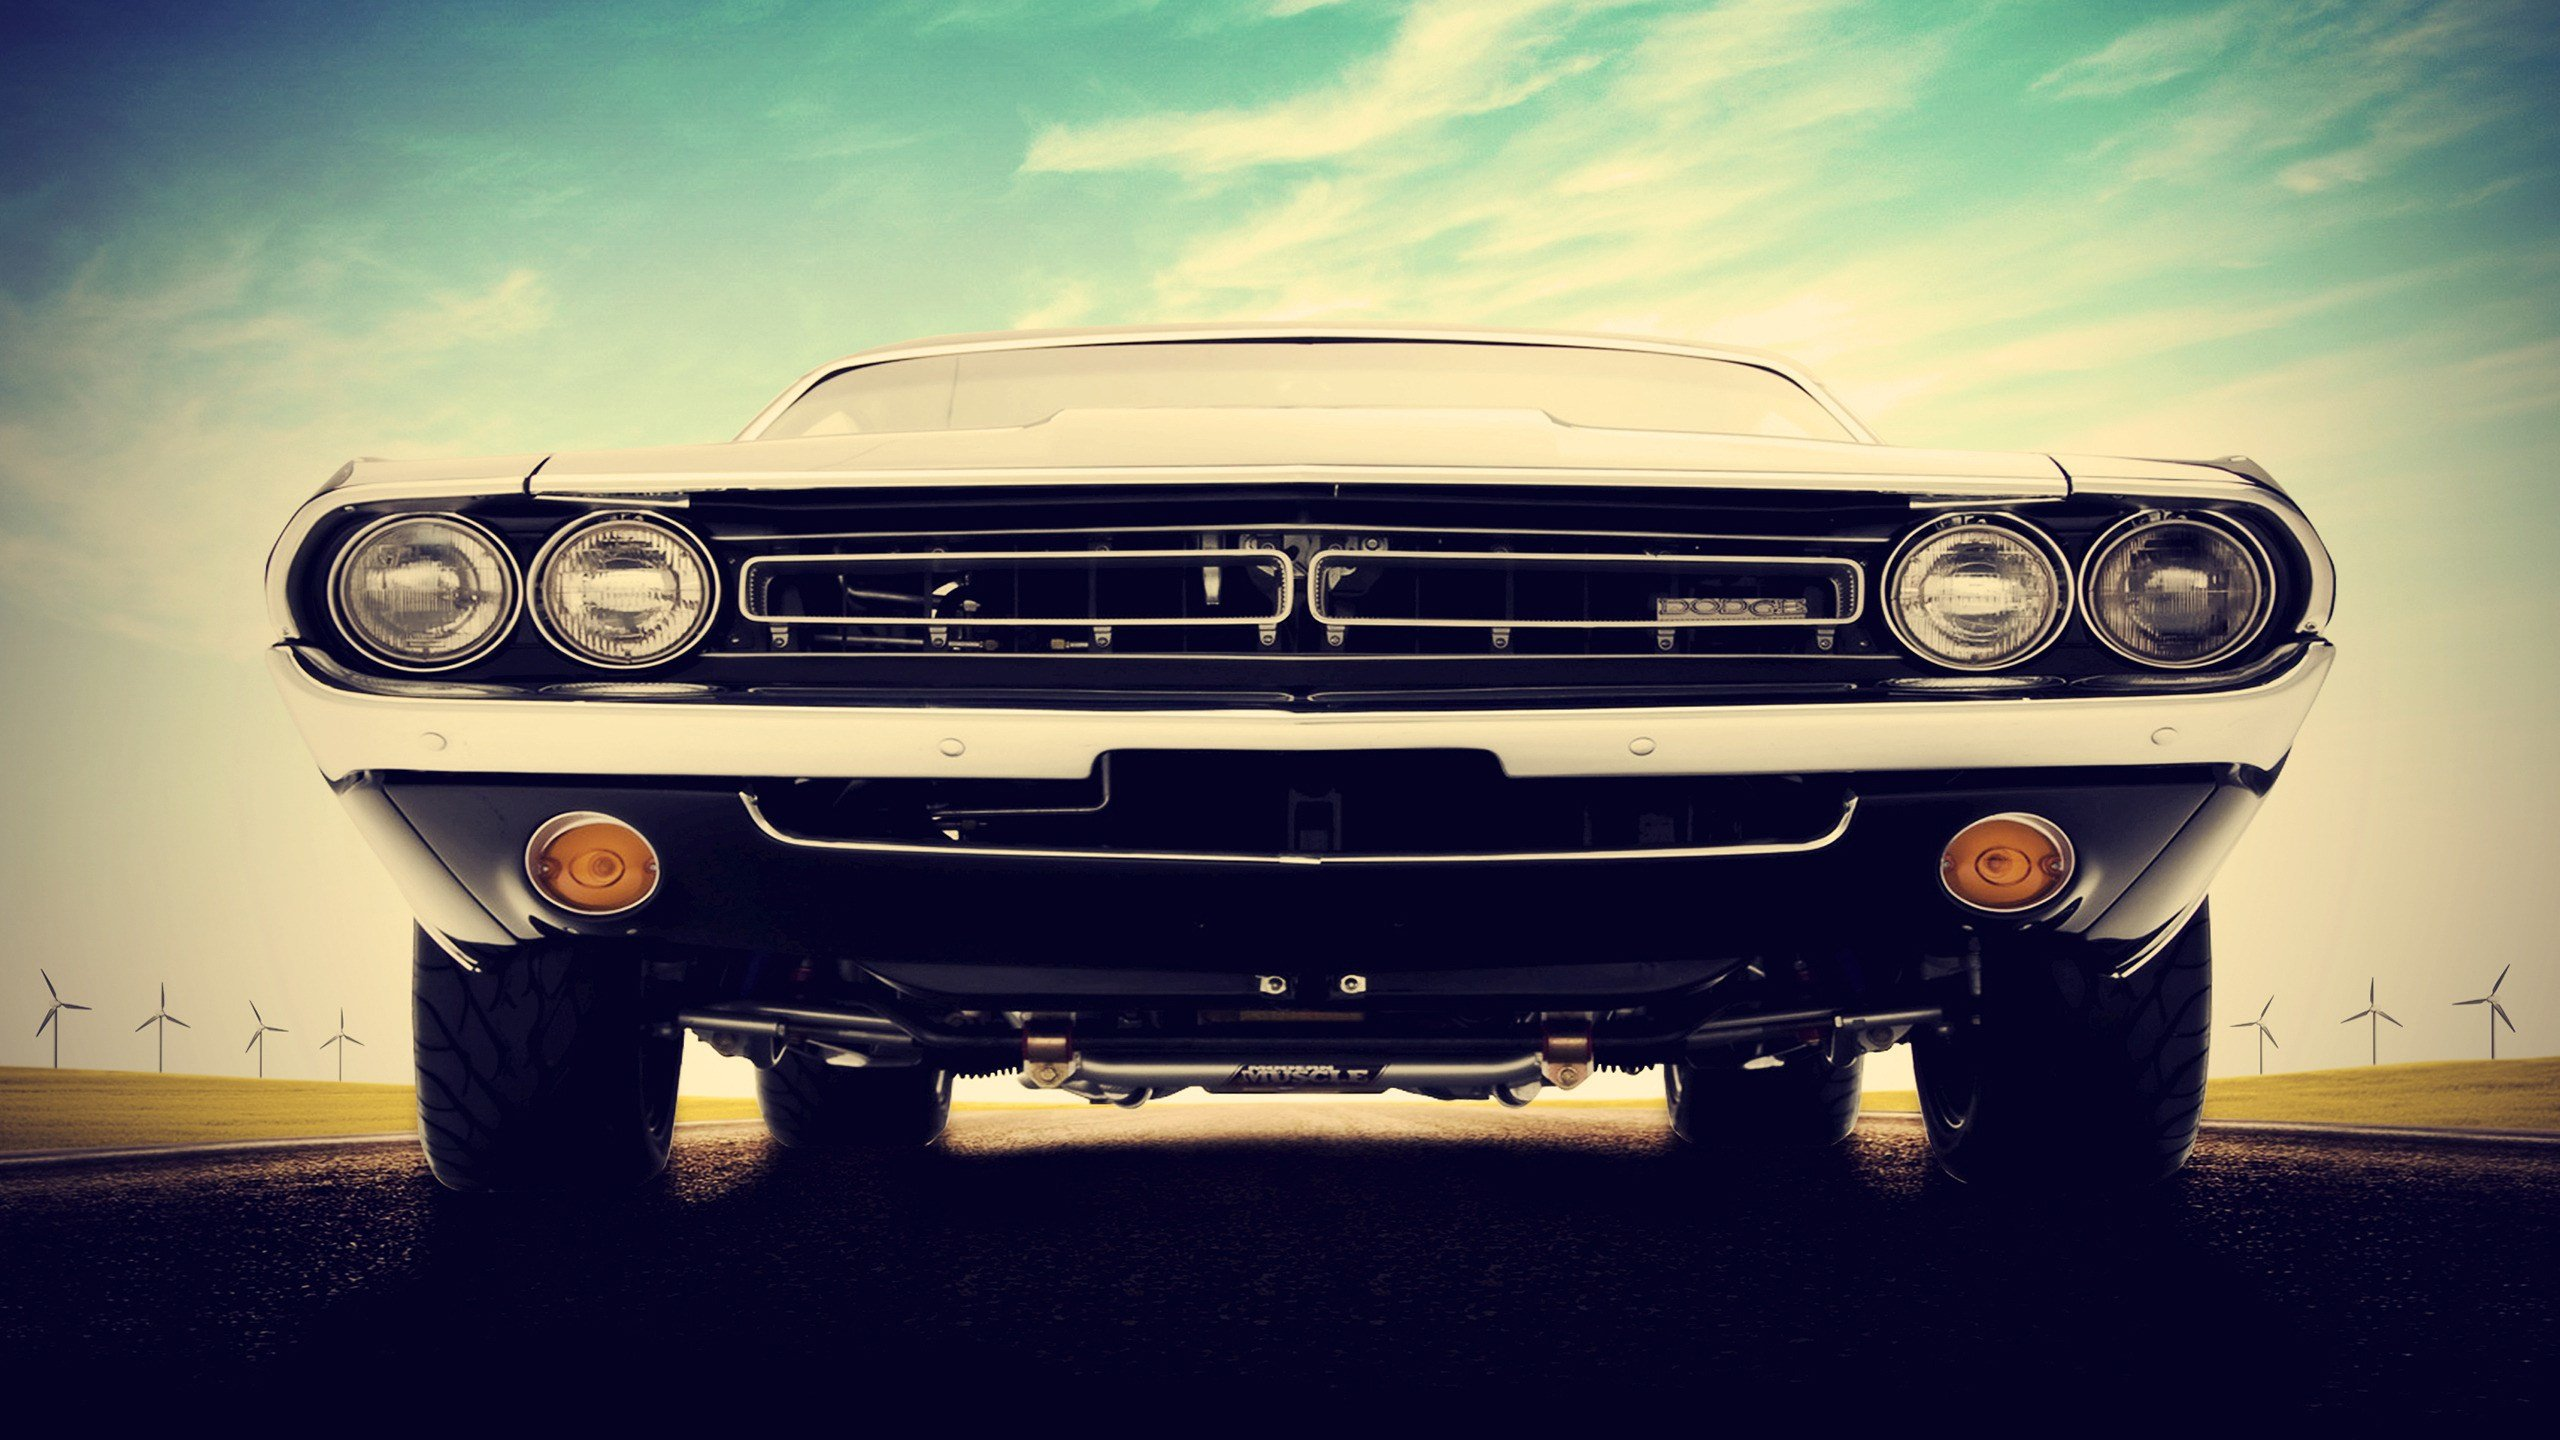 New Dodge Challenger Hd Wallpaper Background Image On This Month